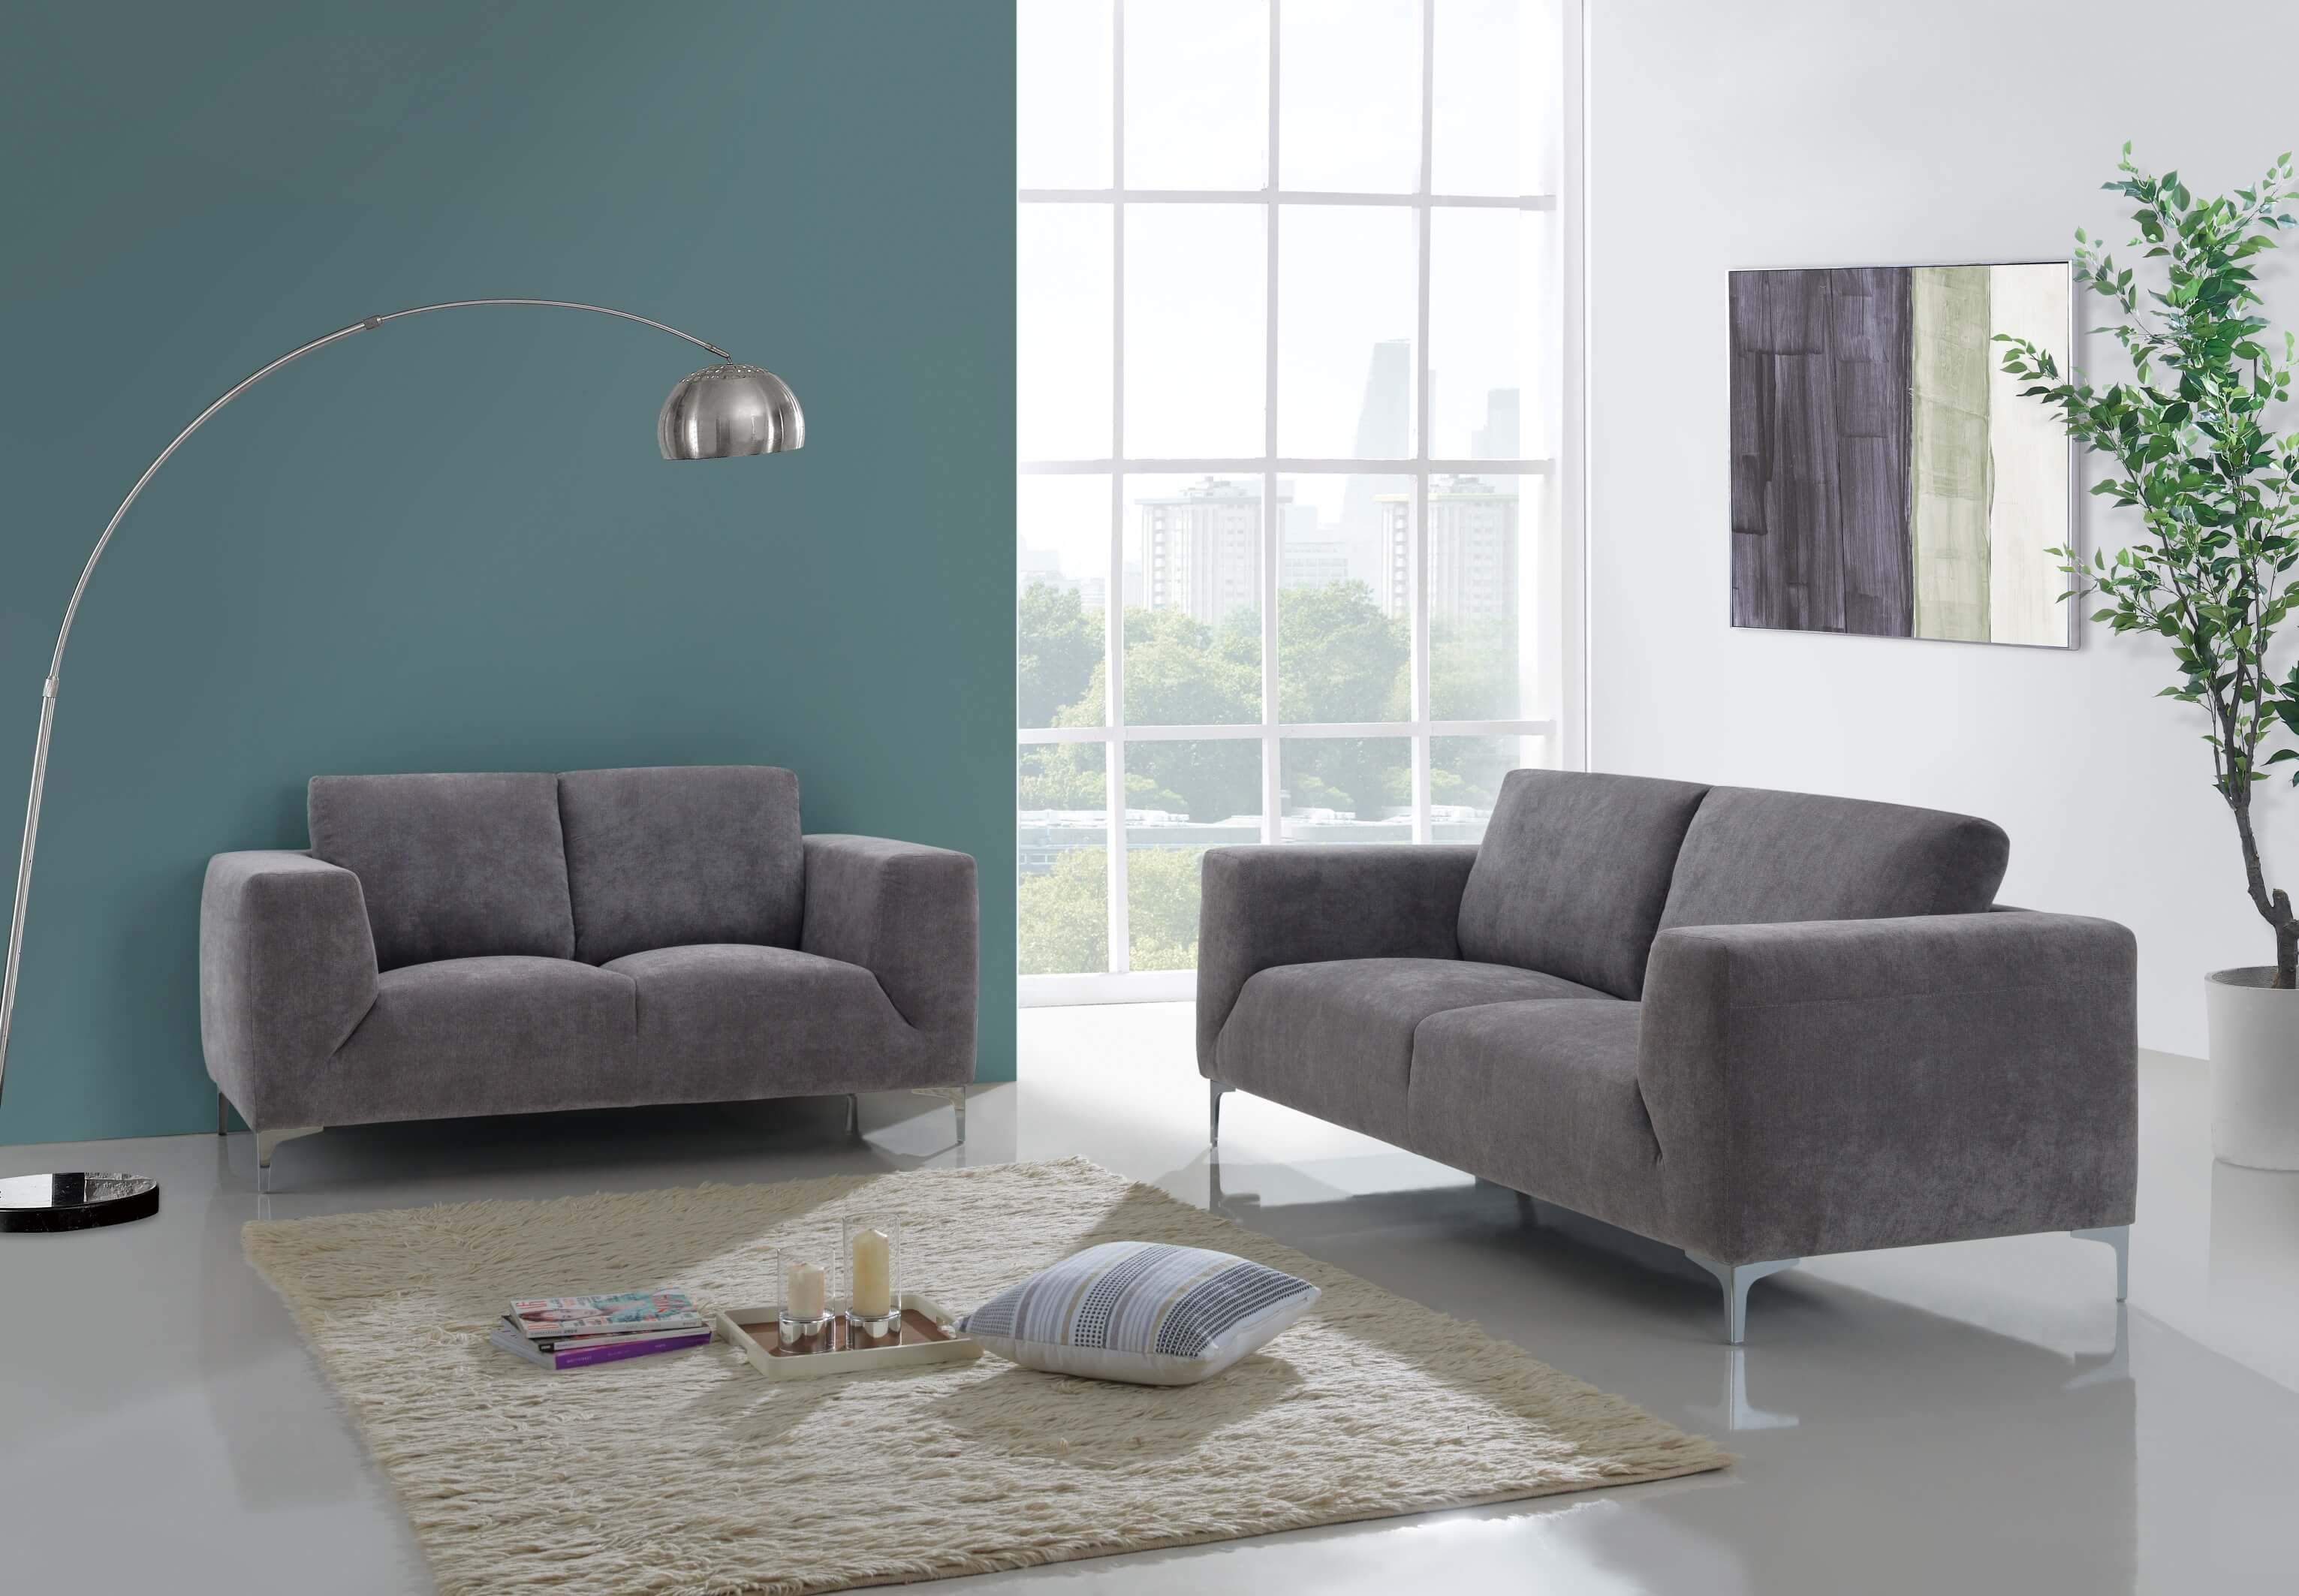 Adjustable Beds Reviews >> Grey Contemporary Sofa and Loveseat | Fabric Living Room Sets